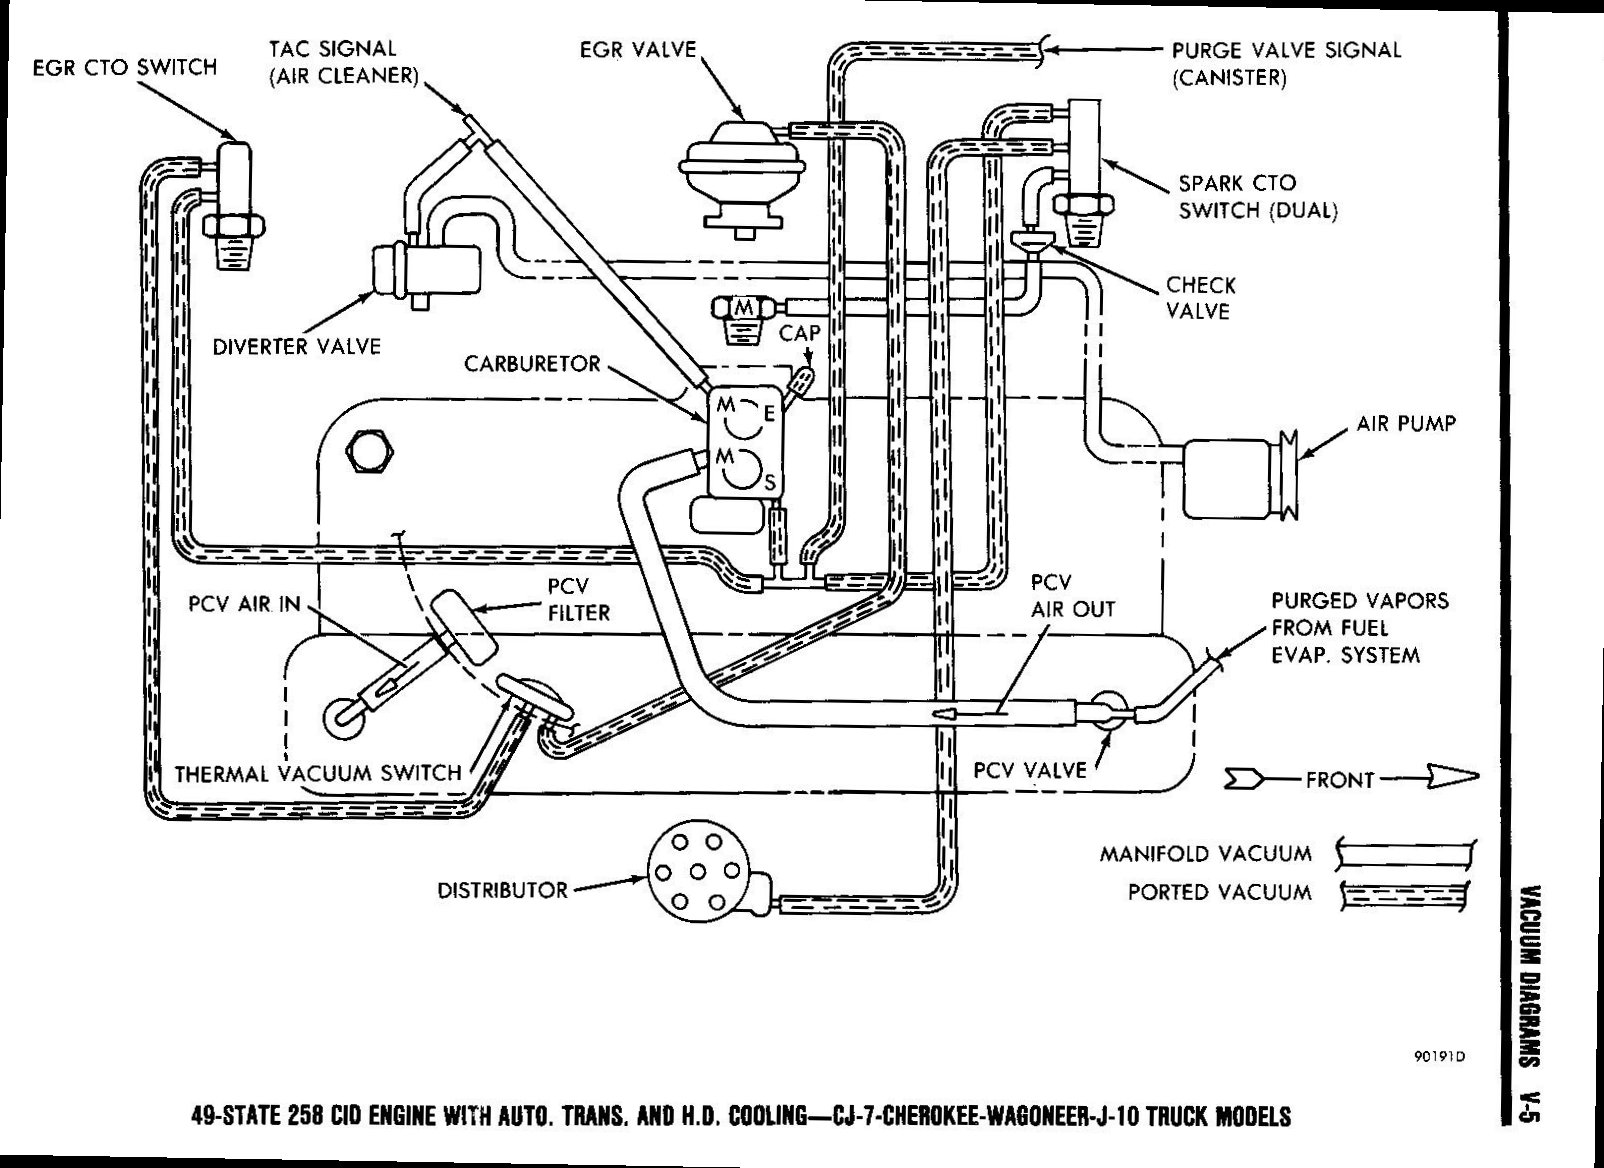 cj5 258 vacuum diagram jeepforum com rh jeepforum com jeep vacuum diagram 1979 CJ5 Emissions Diagram